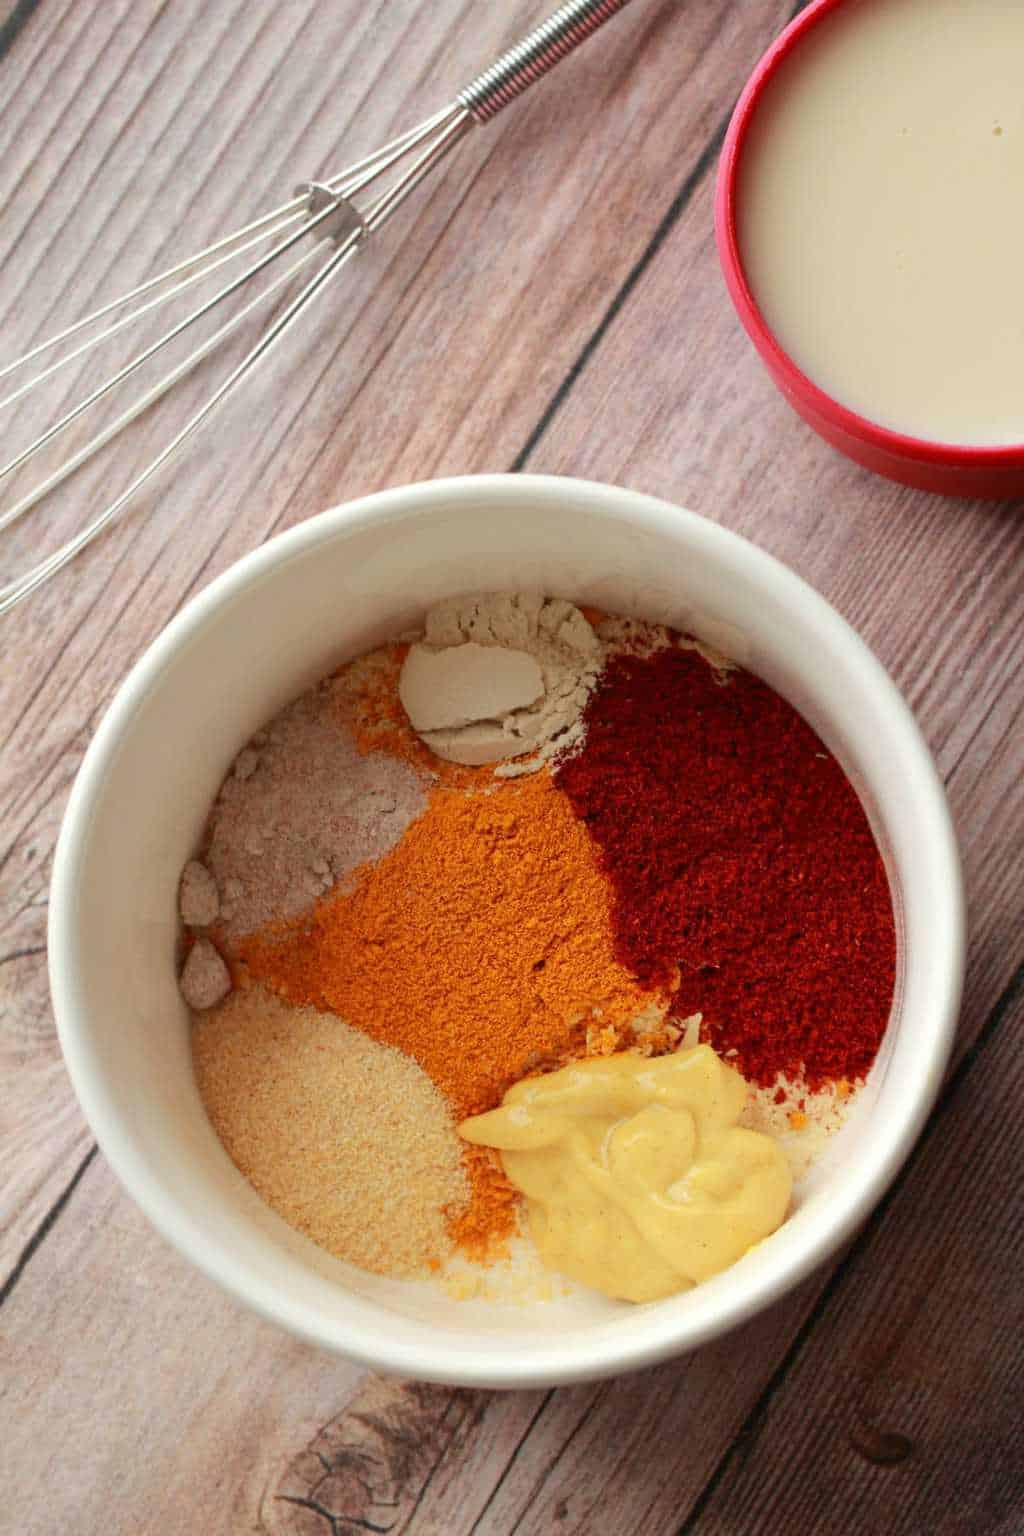 Spices in a white bowl with a mini whisk and a cup of soy milk.